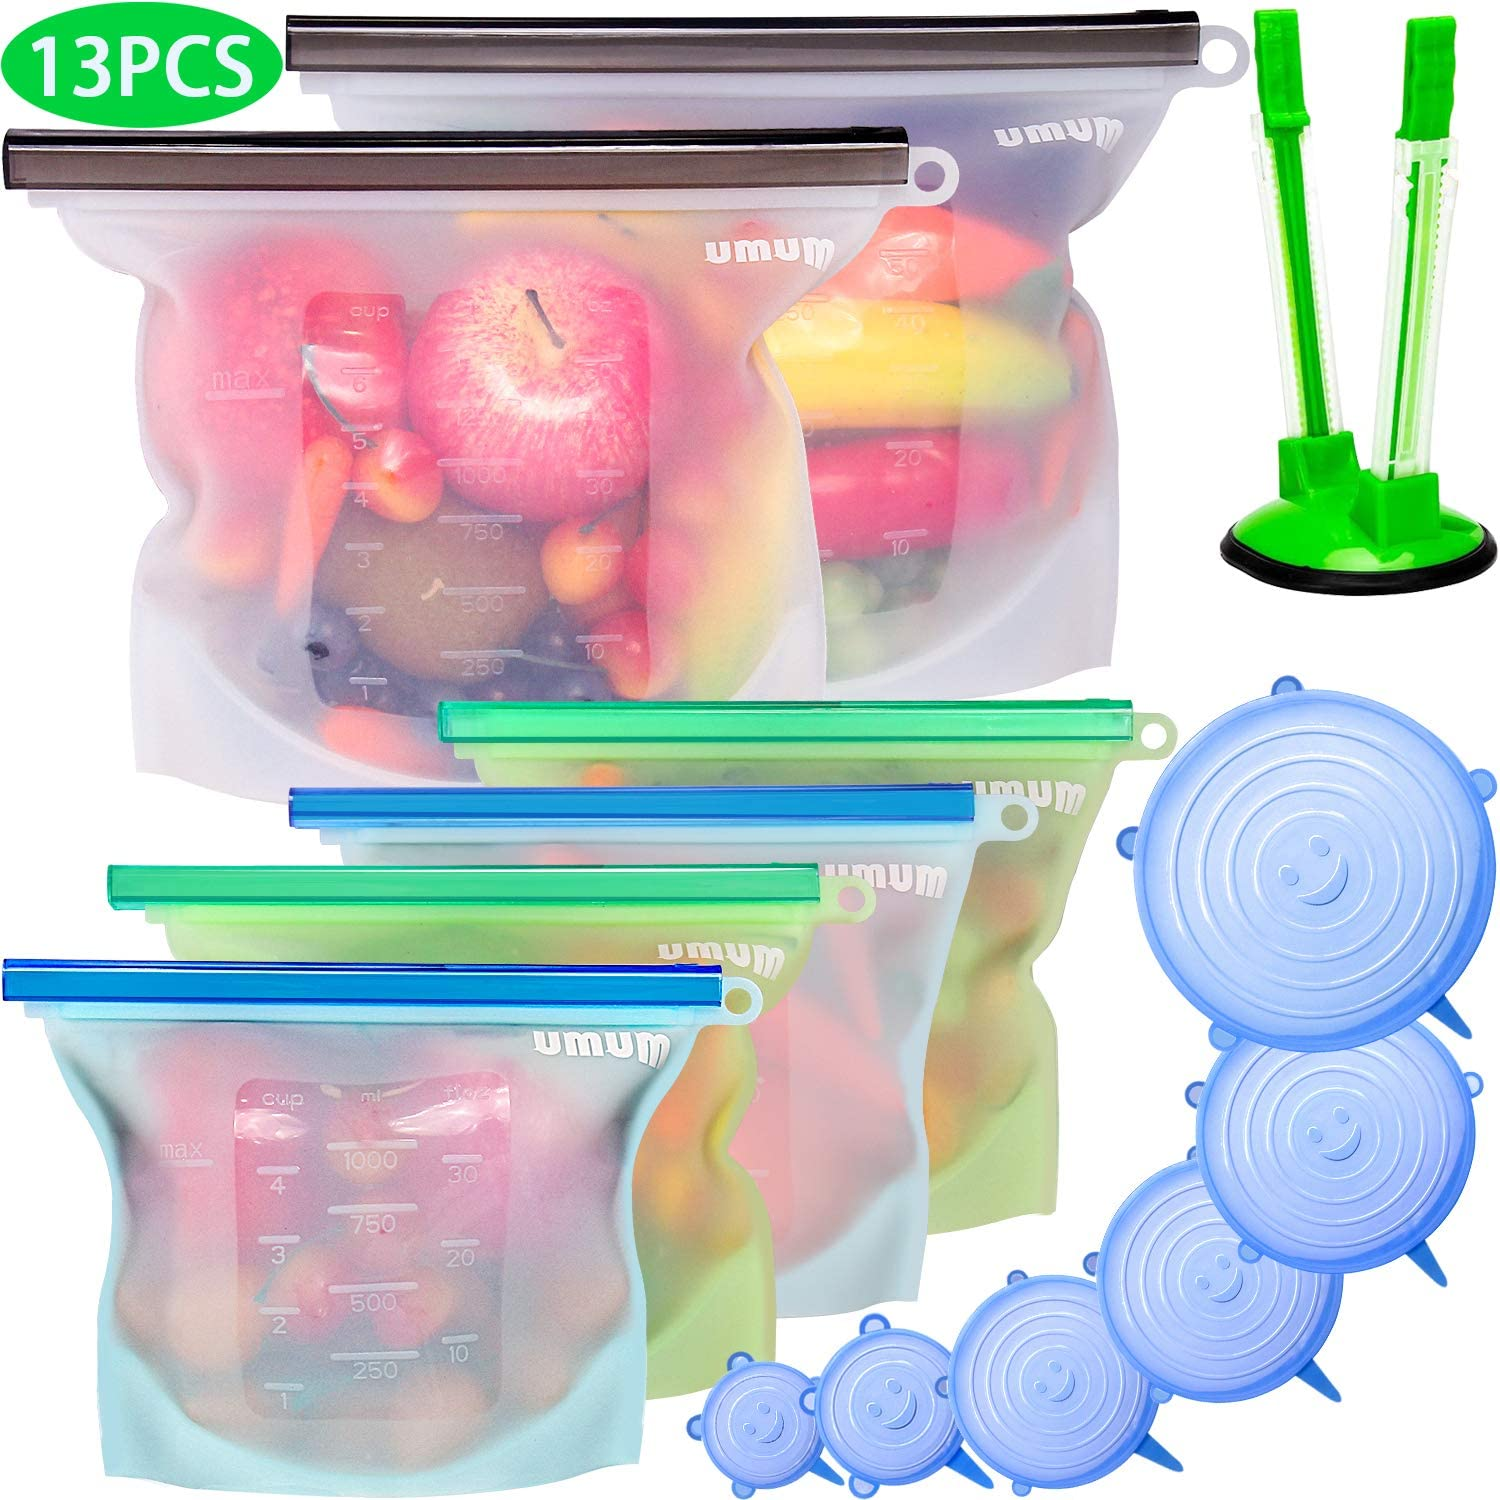 Umum Silicone Storage Bags and Stretch Lids